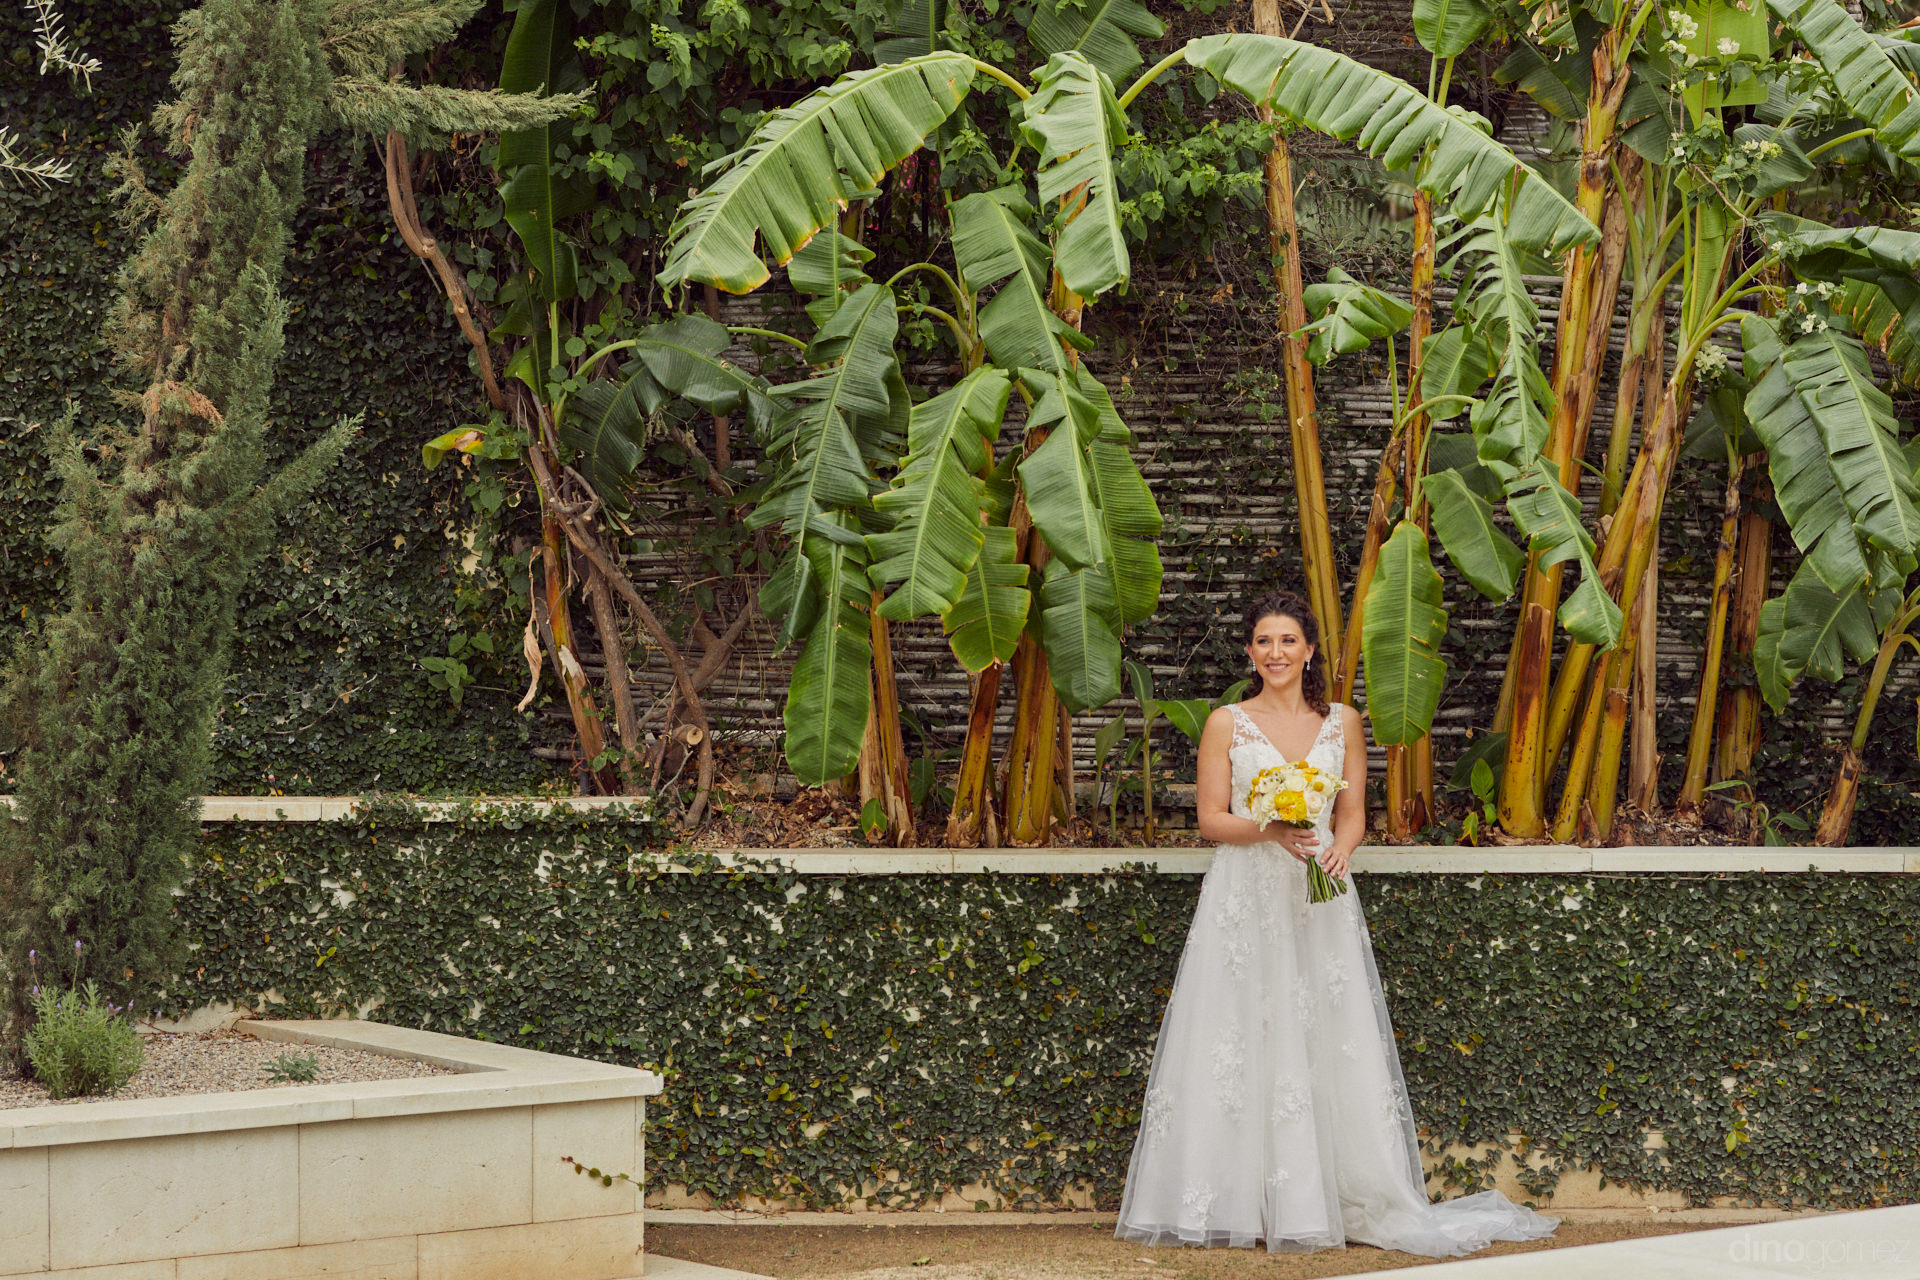 Boho Specialized Wedding Photographer In Los Cabos Mexico - Hilary & Bryan Flora Wedding